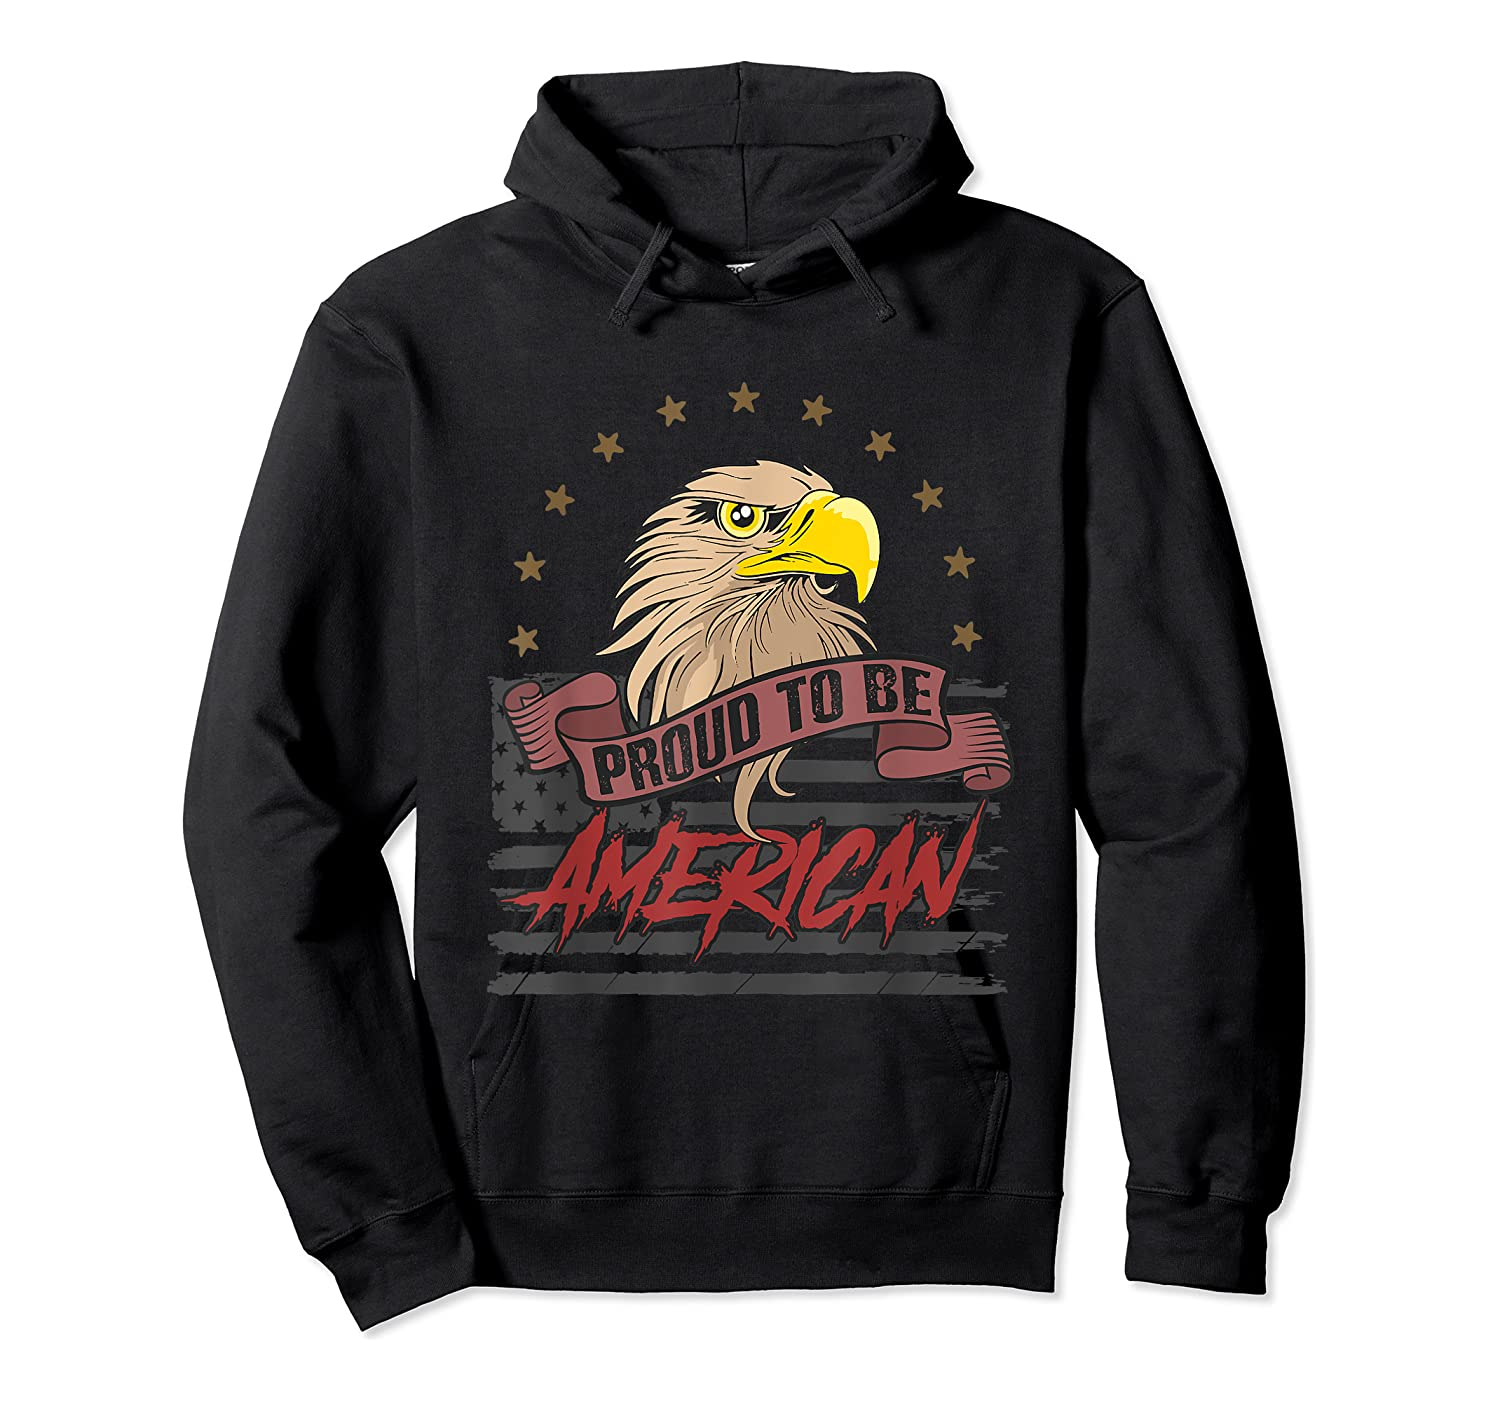 Cool American Flag Eagle Powerful Us Army Patriot Gift T-shirt Unisex Pullover Hoodie